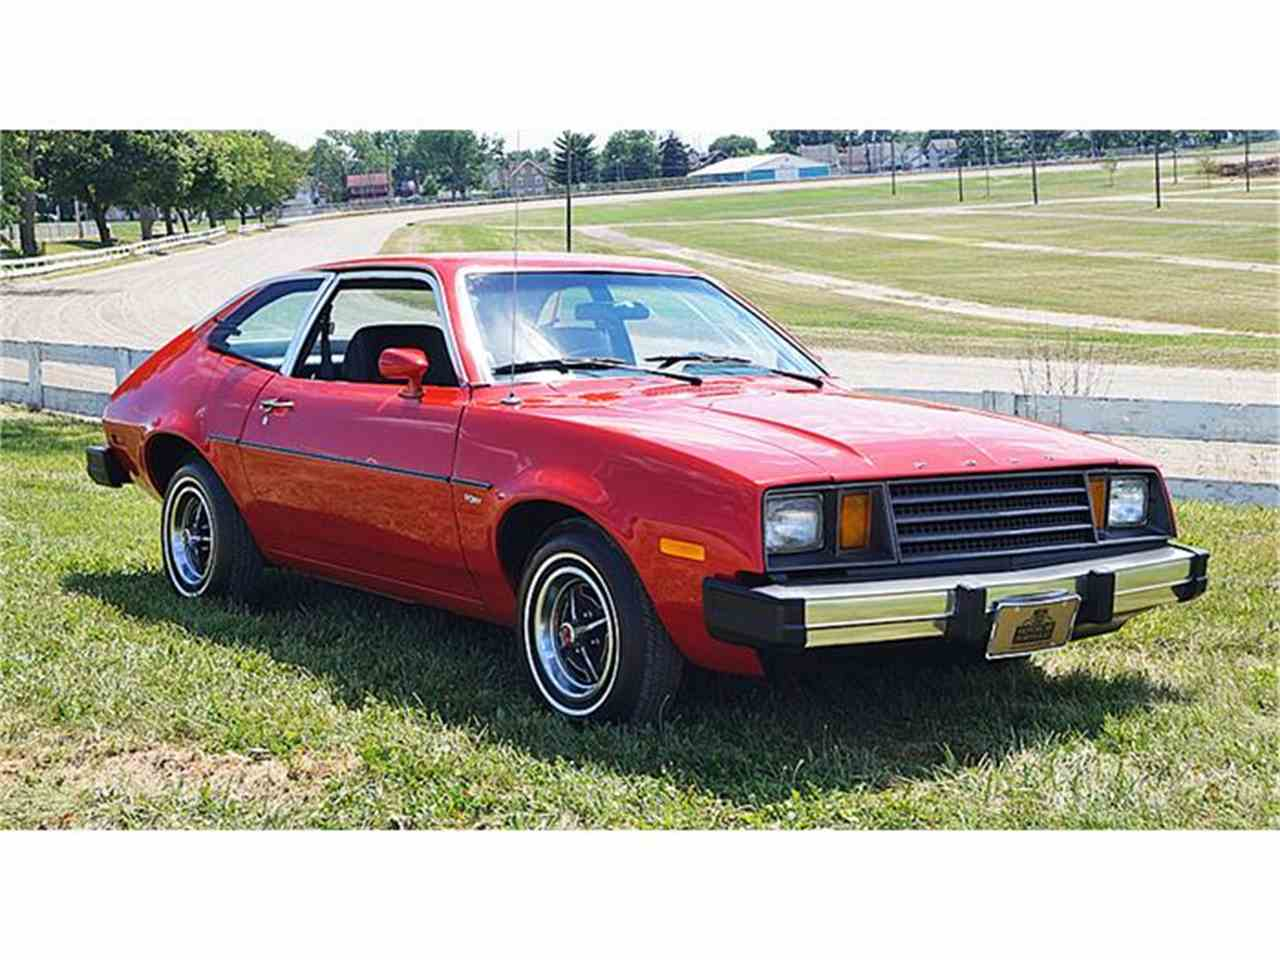 1980 ford pinto for sale classiccars cc 758515 large picture of 80 pinto g99v sciox Gallery